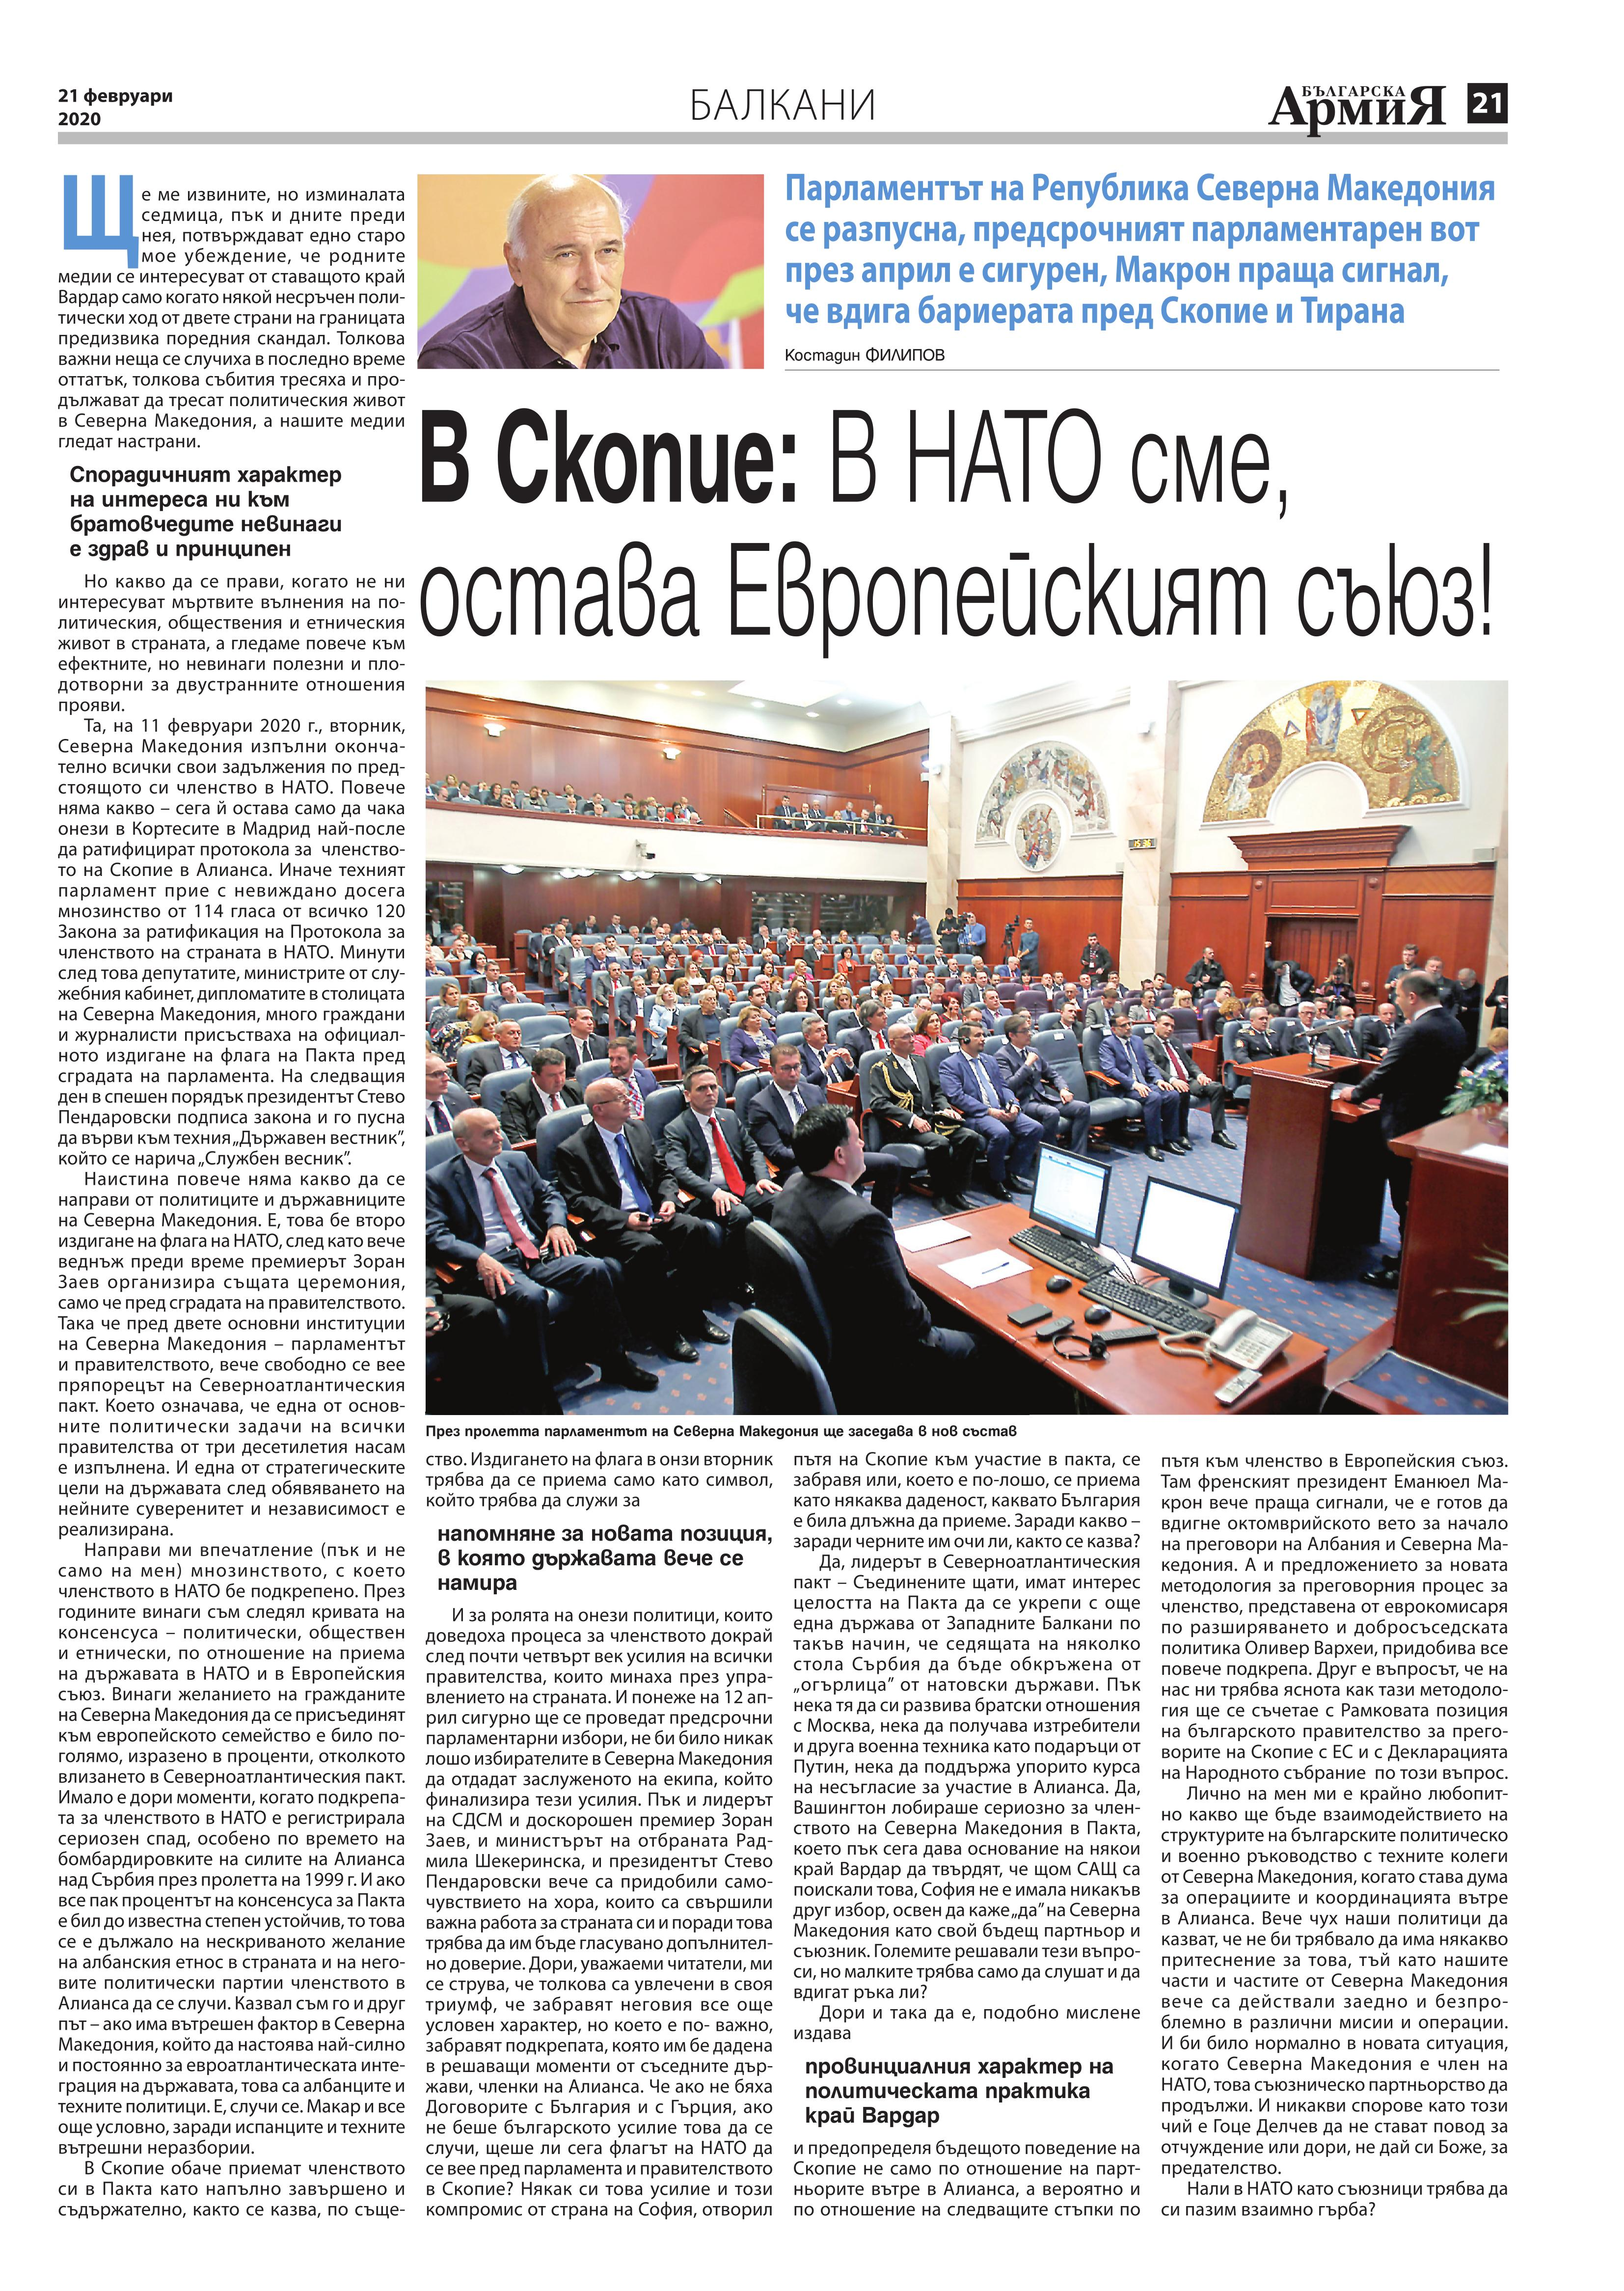 https://armymedia.bg/wp-content/uploads/2015/06/21.page1_-127.jpg